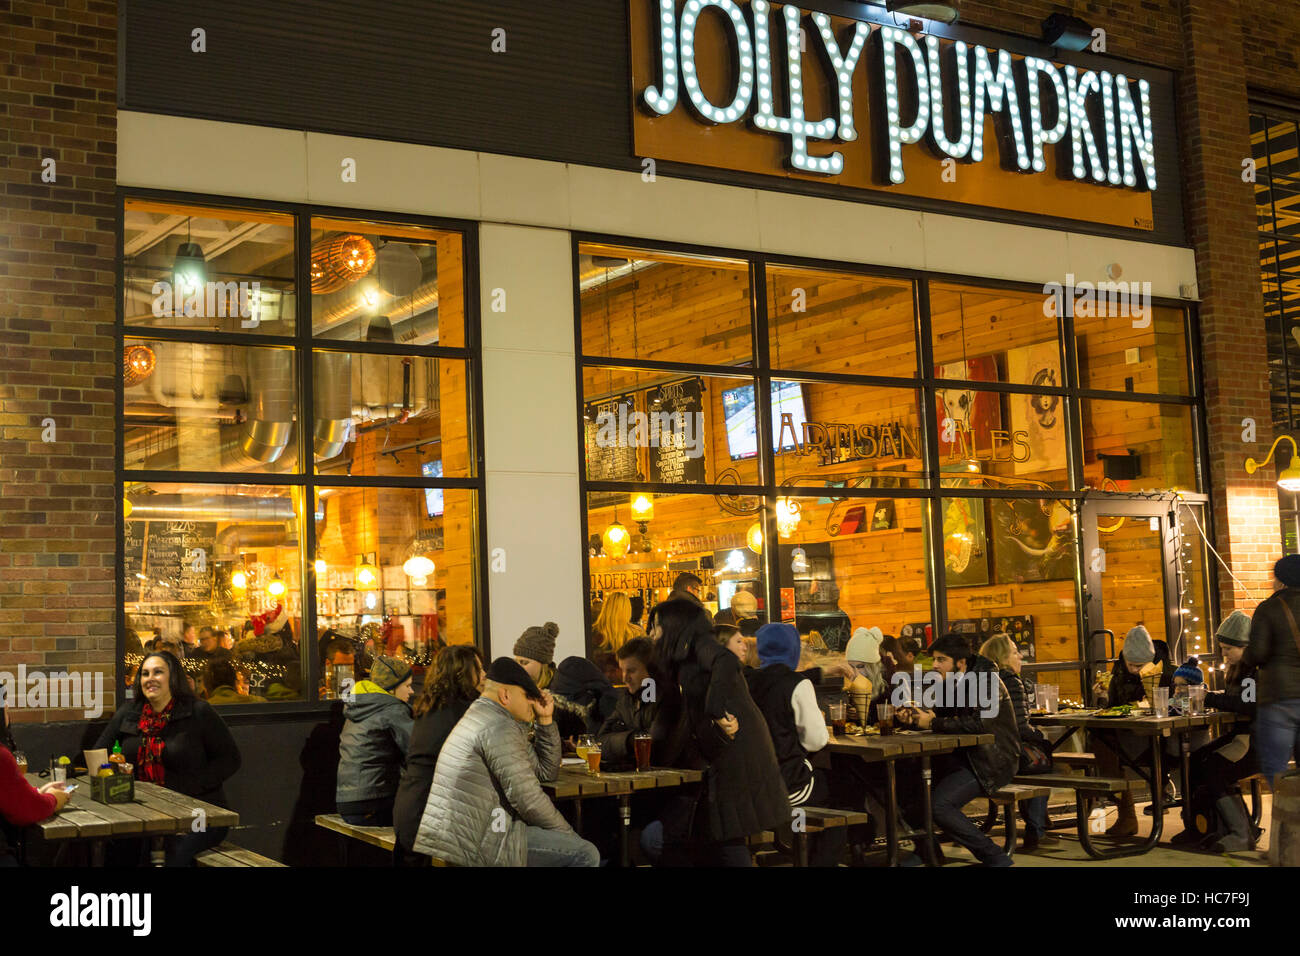 Detroit, Michigan - The Jolly Pumpkin tavern during Noel Night, the start of the holiday season in Detroit. - Stock Image